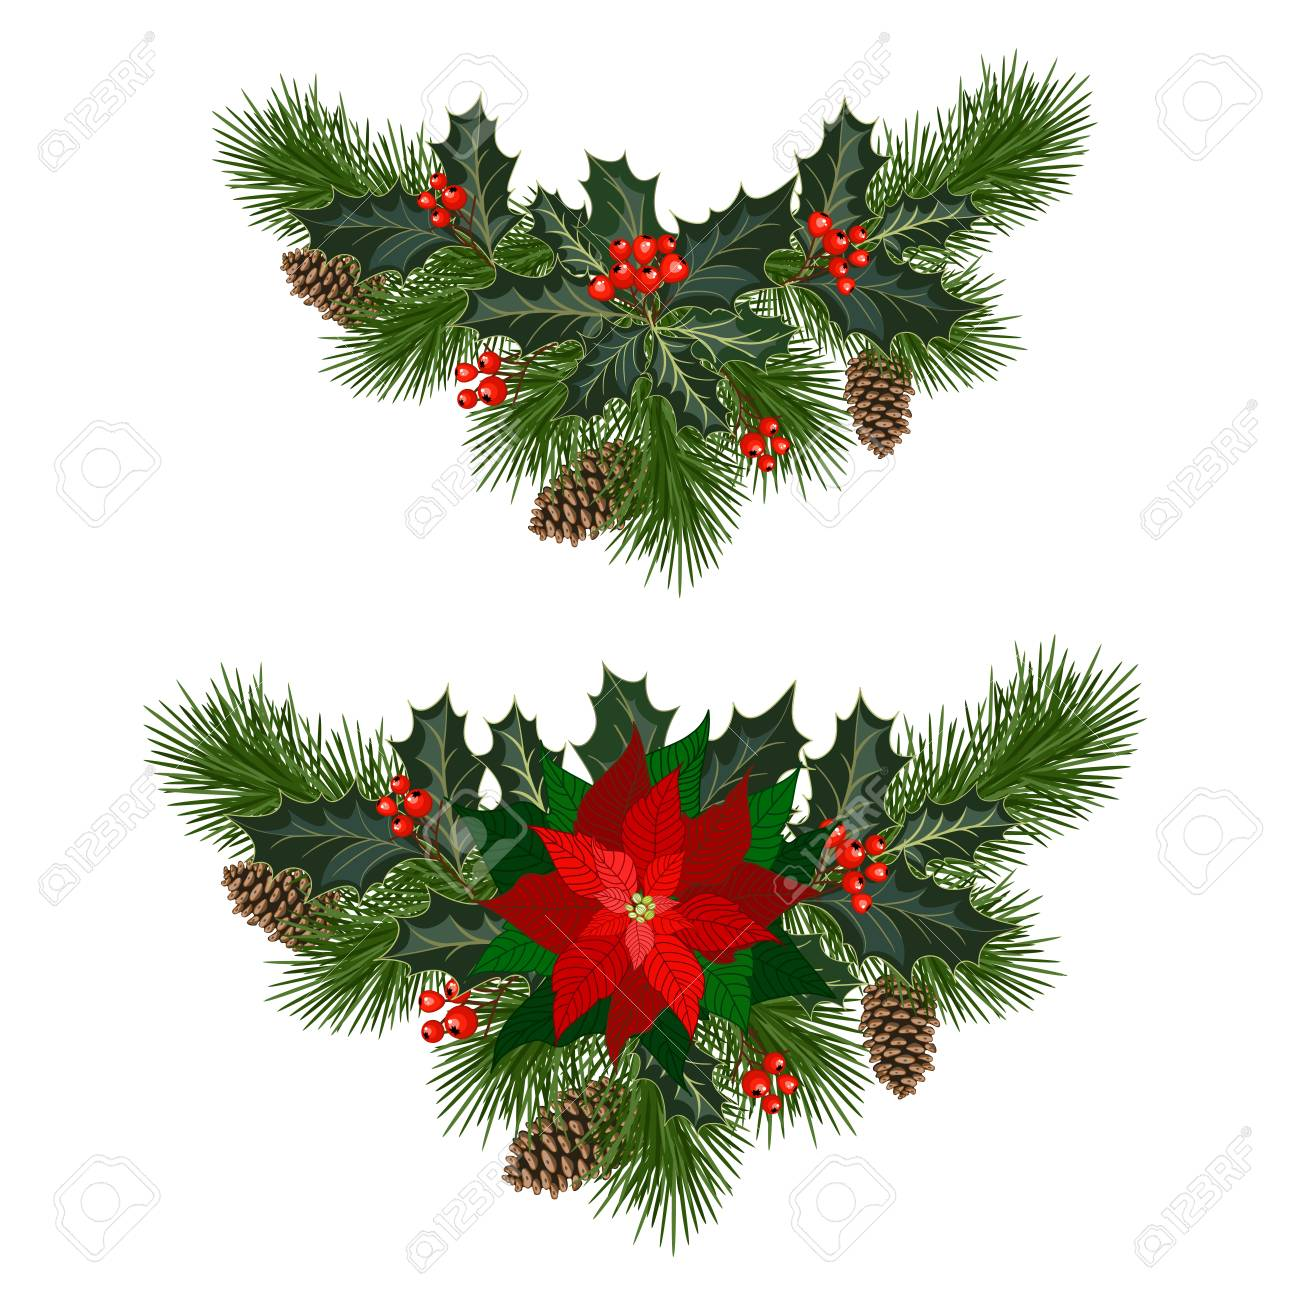 christmas decorations with poinsettia fir tree pine cones holly berries and other